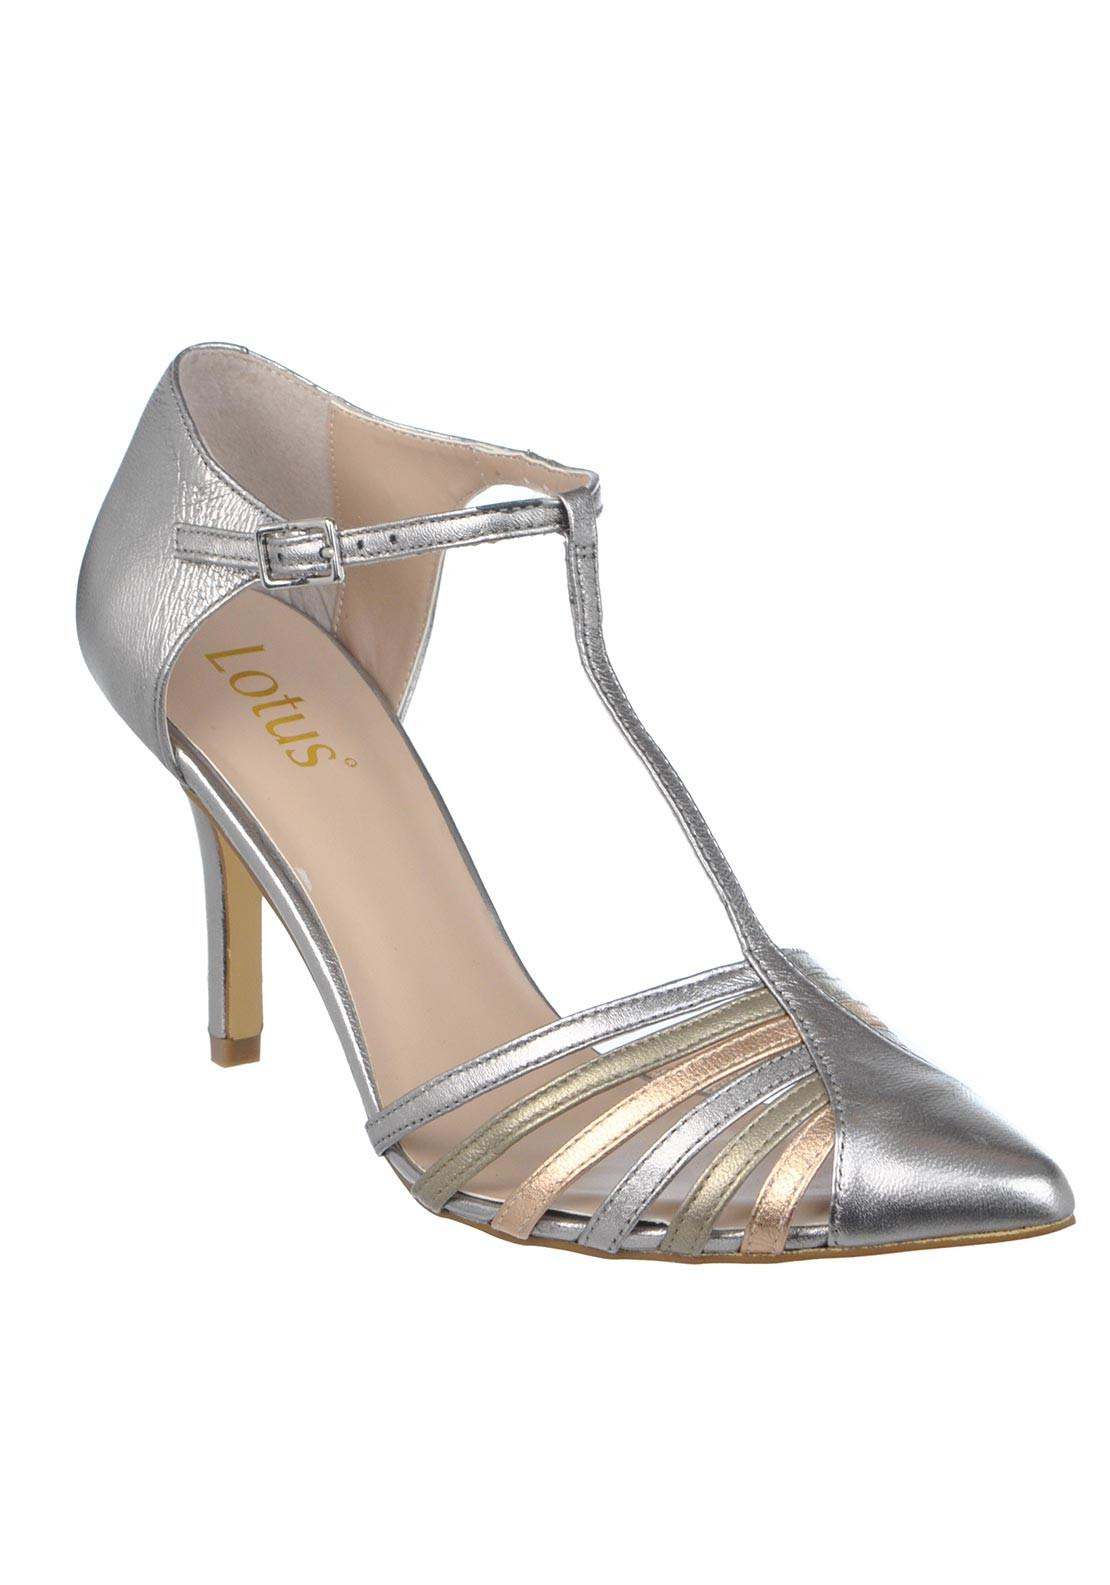 Lotus Pointed Toe Metallic T-bar Heeled Leather Shoes, Silver